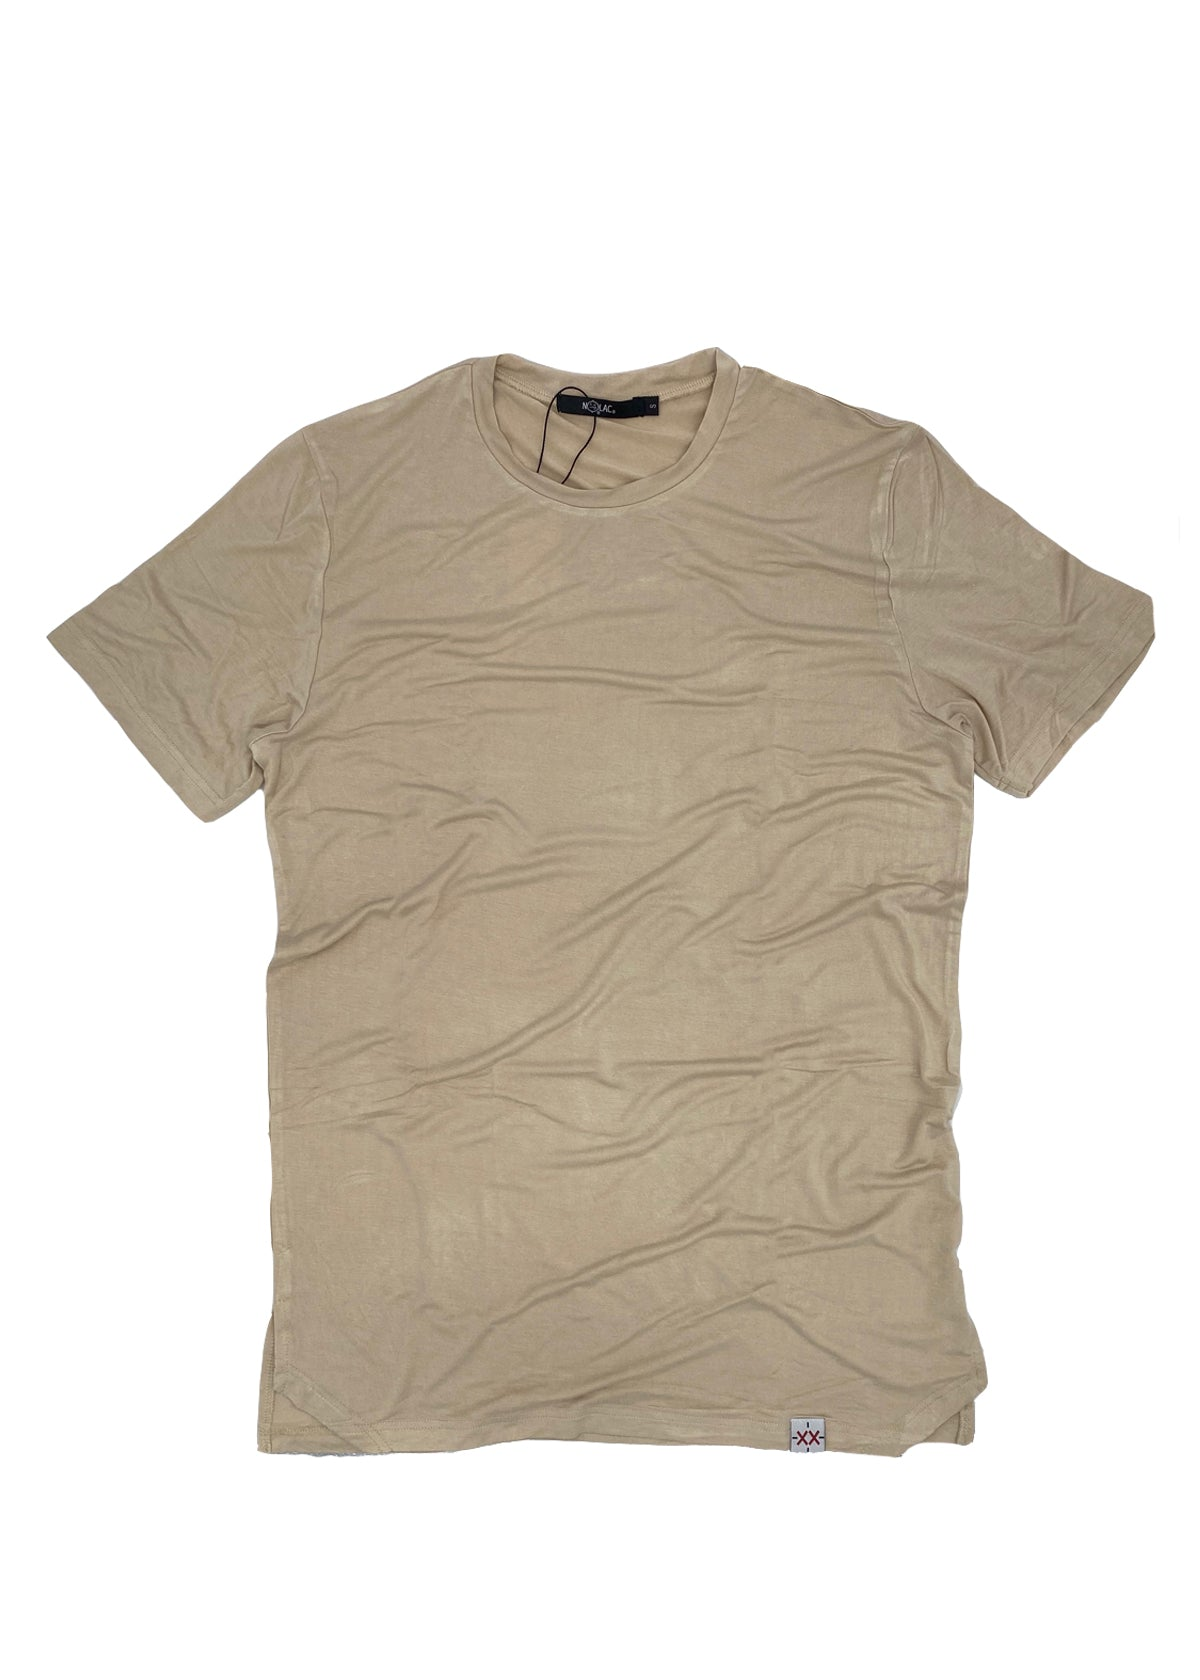 SS Fundamental T Shirt (Tan)